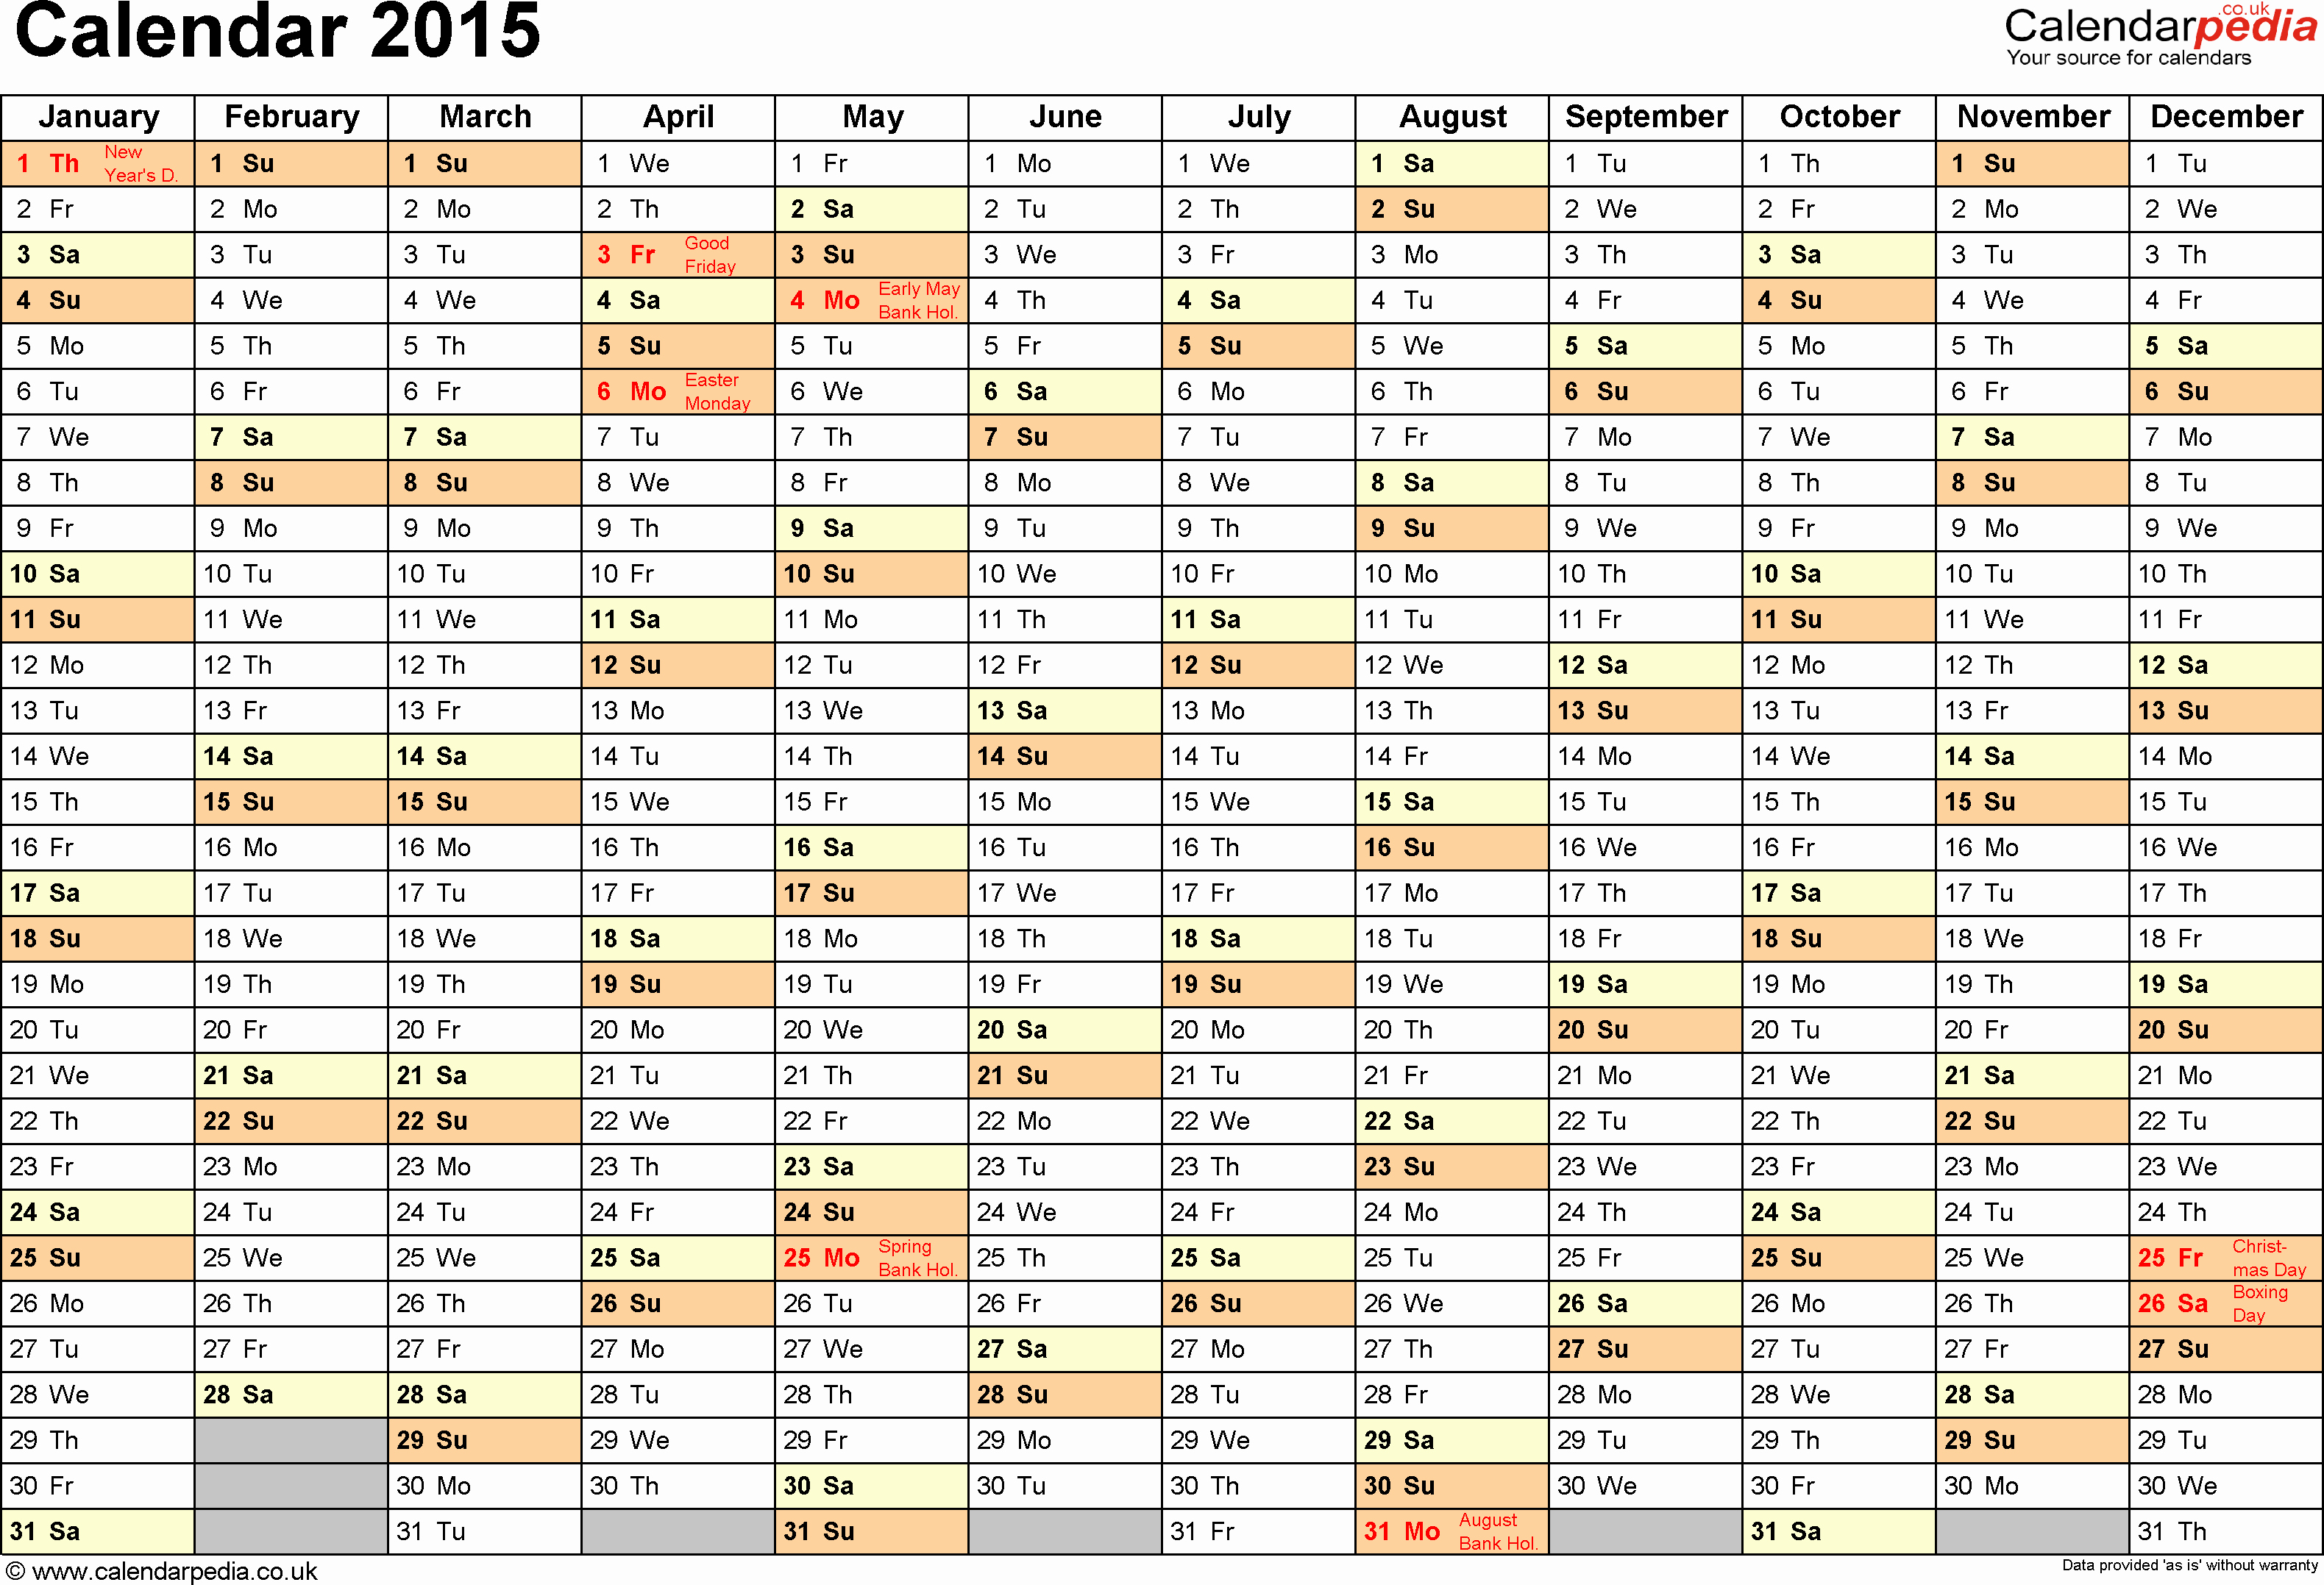 Calendar 2015 Printable with Holidays Luxury Excel Calendar 2015 Uk 16 Printable Templates Xlsx Free